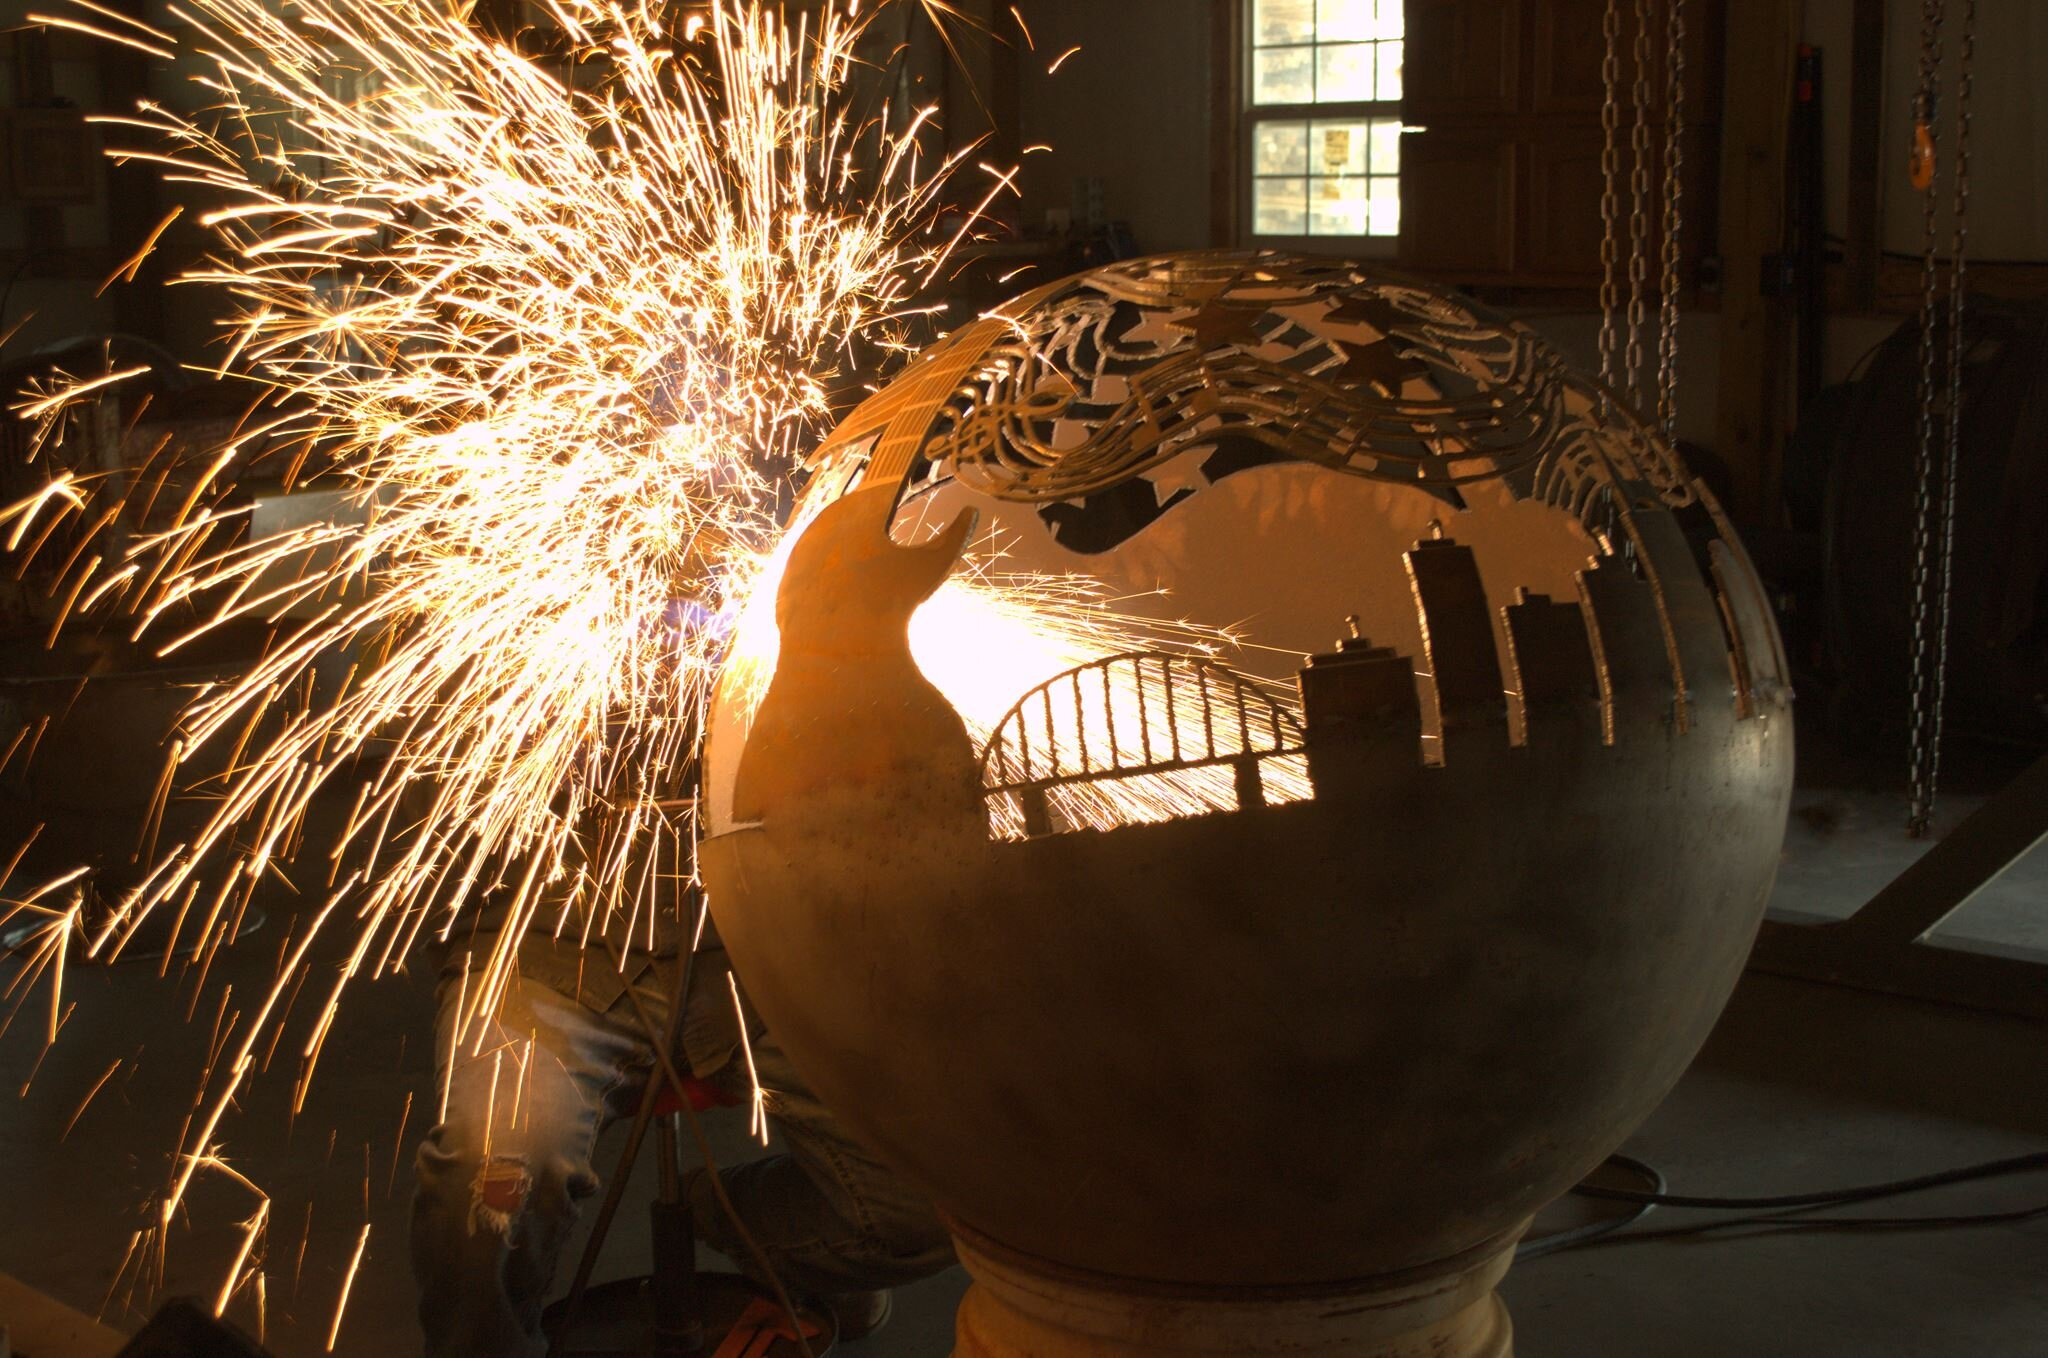 Hand Cut With A Torch - David cuts all his bowls and spheres by hand. These are heirloom quality products with each one being unique and built to last a lifetime.